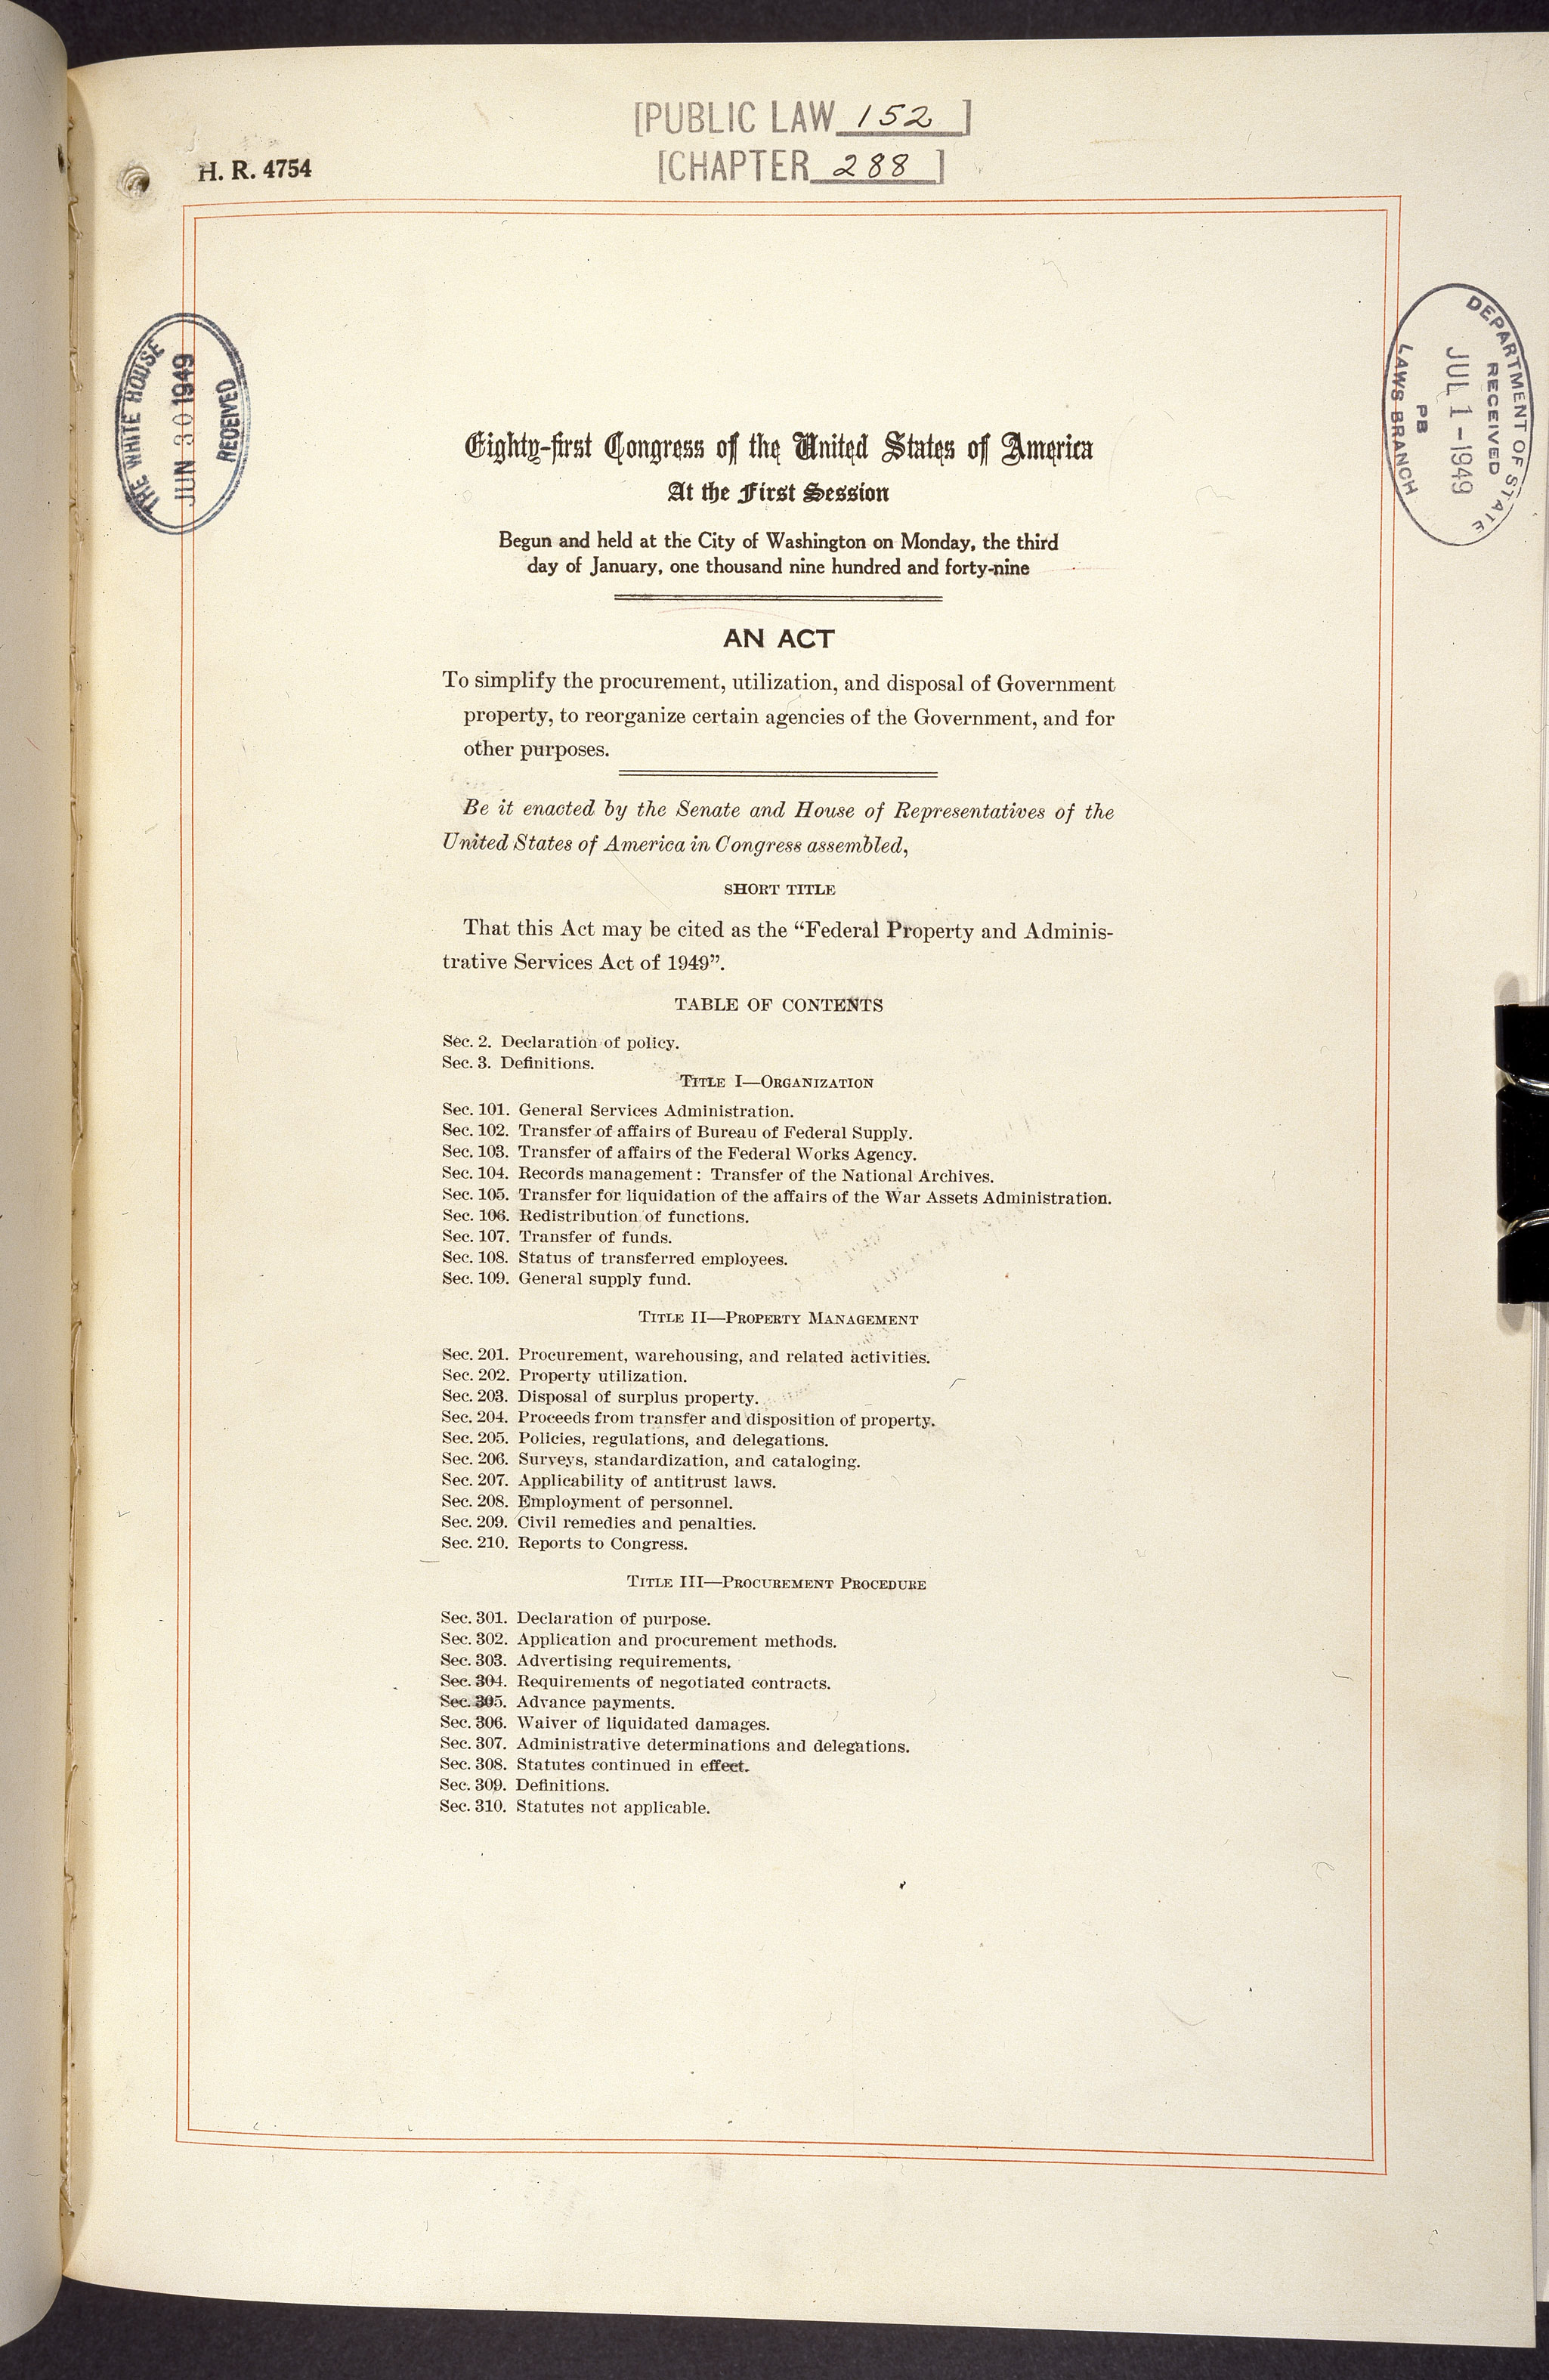 Federal Property and Administrative Services Act,  June 30, 1949. (General Records of the U.S. Government, National Archives)